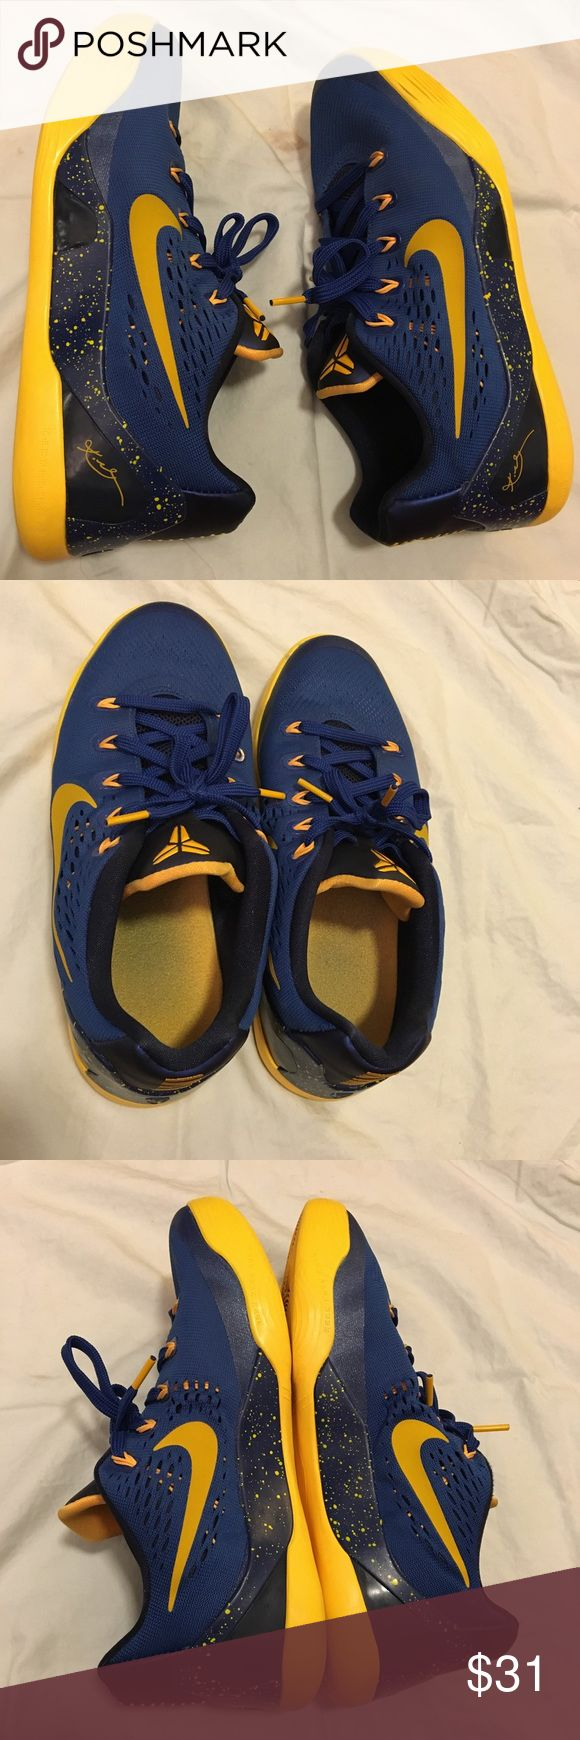 Nike Kobe Bryant IX 9 GS Basketball Shoes Used a few times but still in great condition! Size 6Y. Feel free to negotiate or ask questions in the comments! Nike Shoes Athletic Shoes